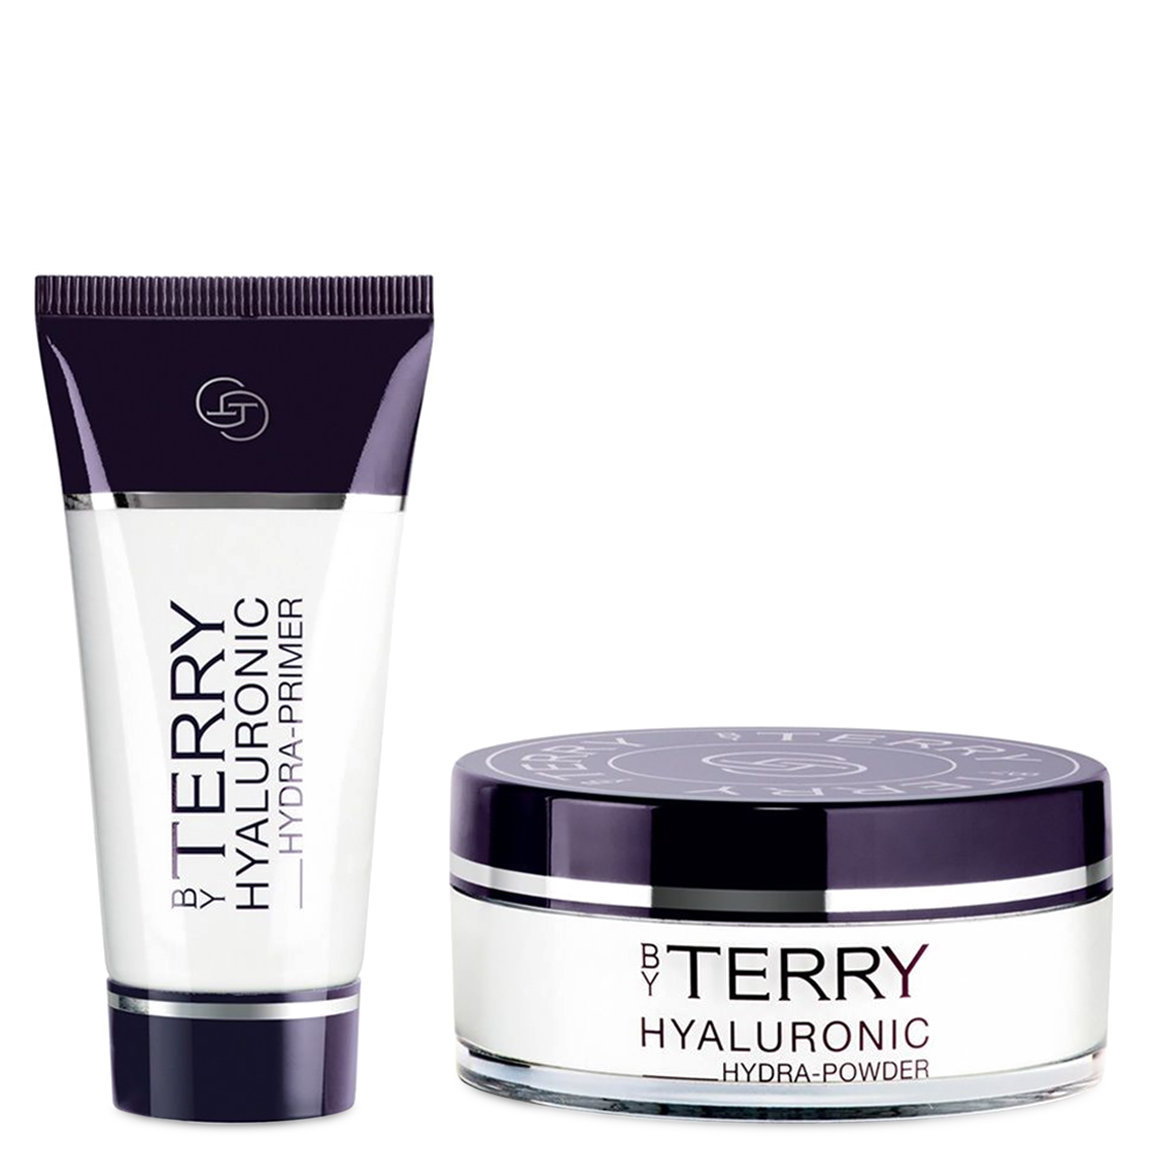 BY TERRY Hyaluronic Duo Set alternative view 1 - product swatch.